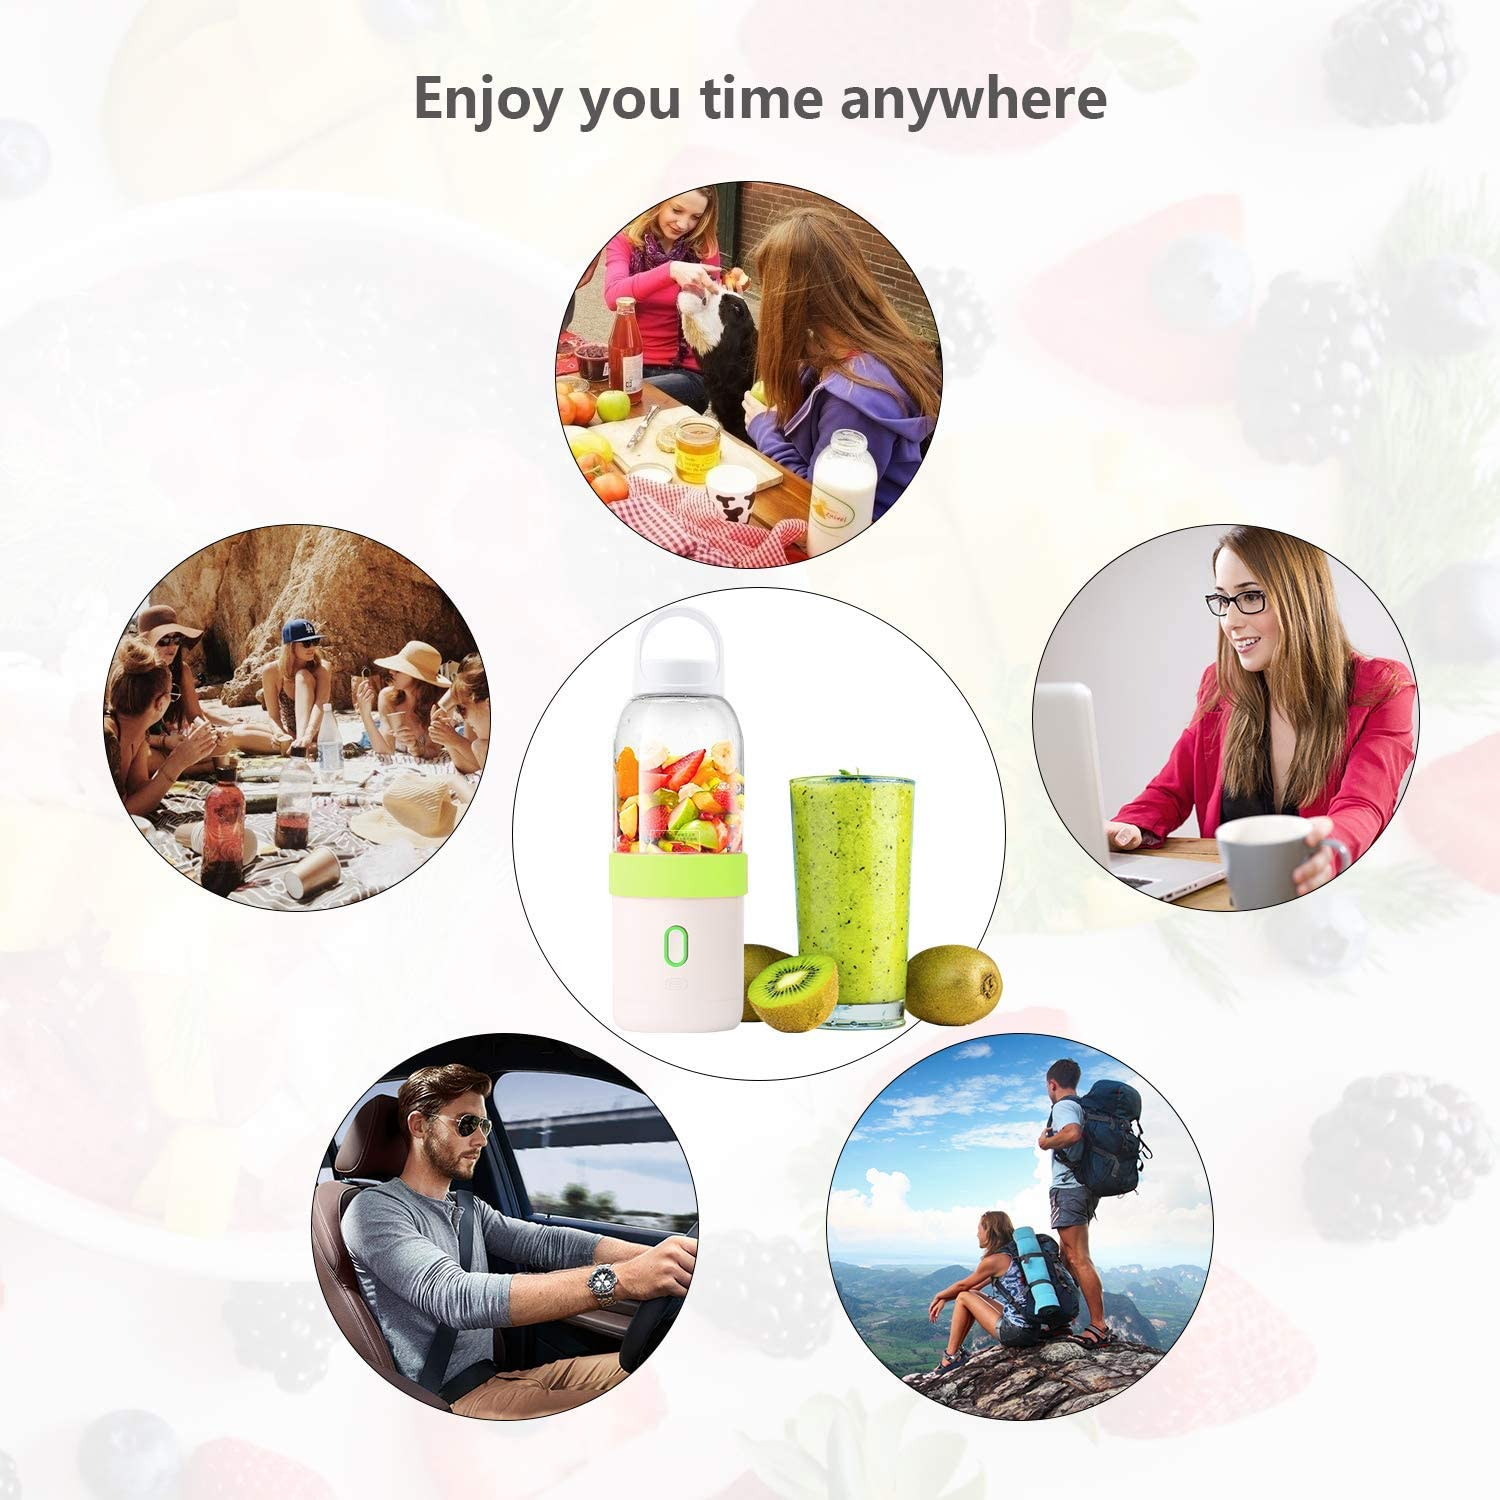 Yiloo Portable Juicer Blender Juice Protein Shaker Fruit Mixer Smoothie Maker for Single Served,Blender Cup W//Juicing Mixing for Home Office Outdoors Sports Hiking Travelling Kitchen Dining Pink